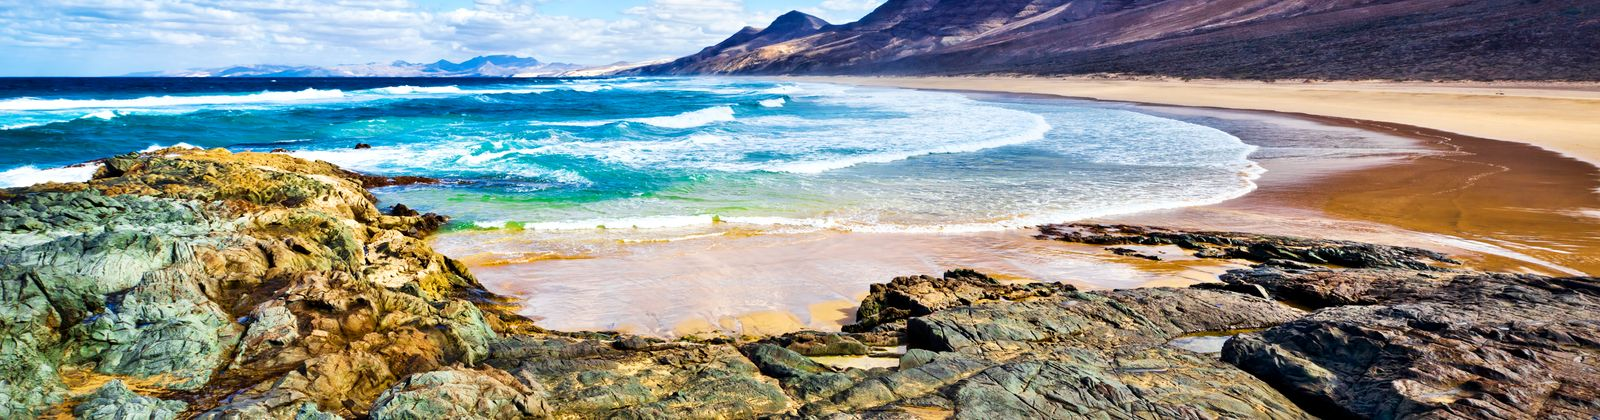 Top 15 attractions and things to do in Fuerteventura